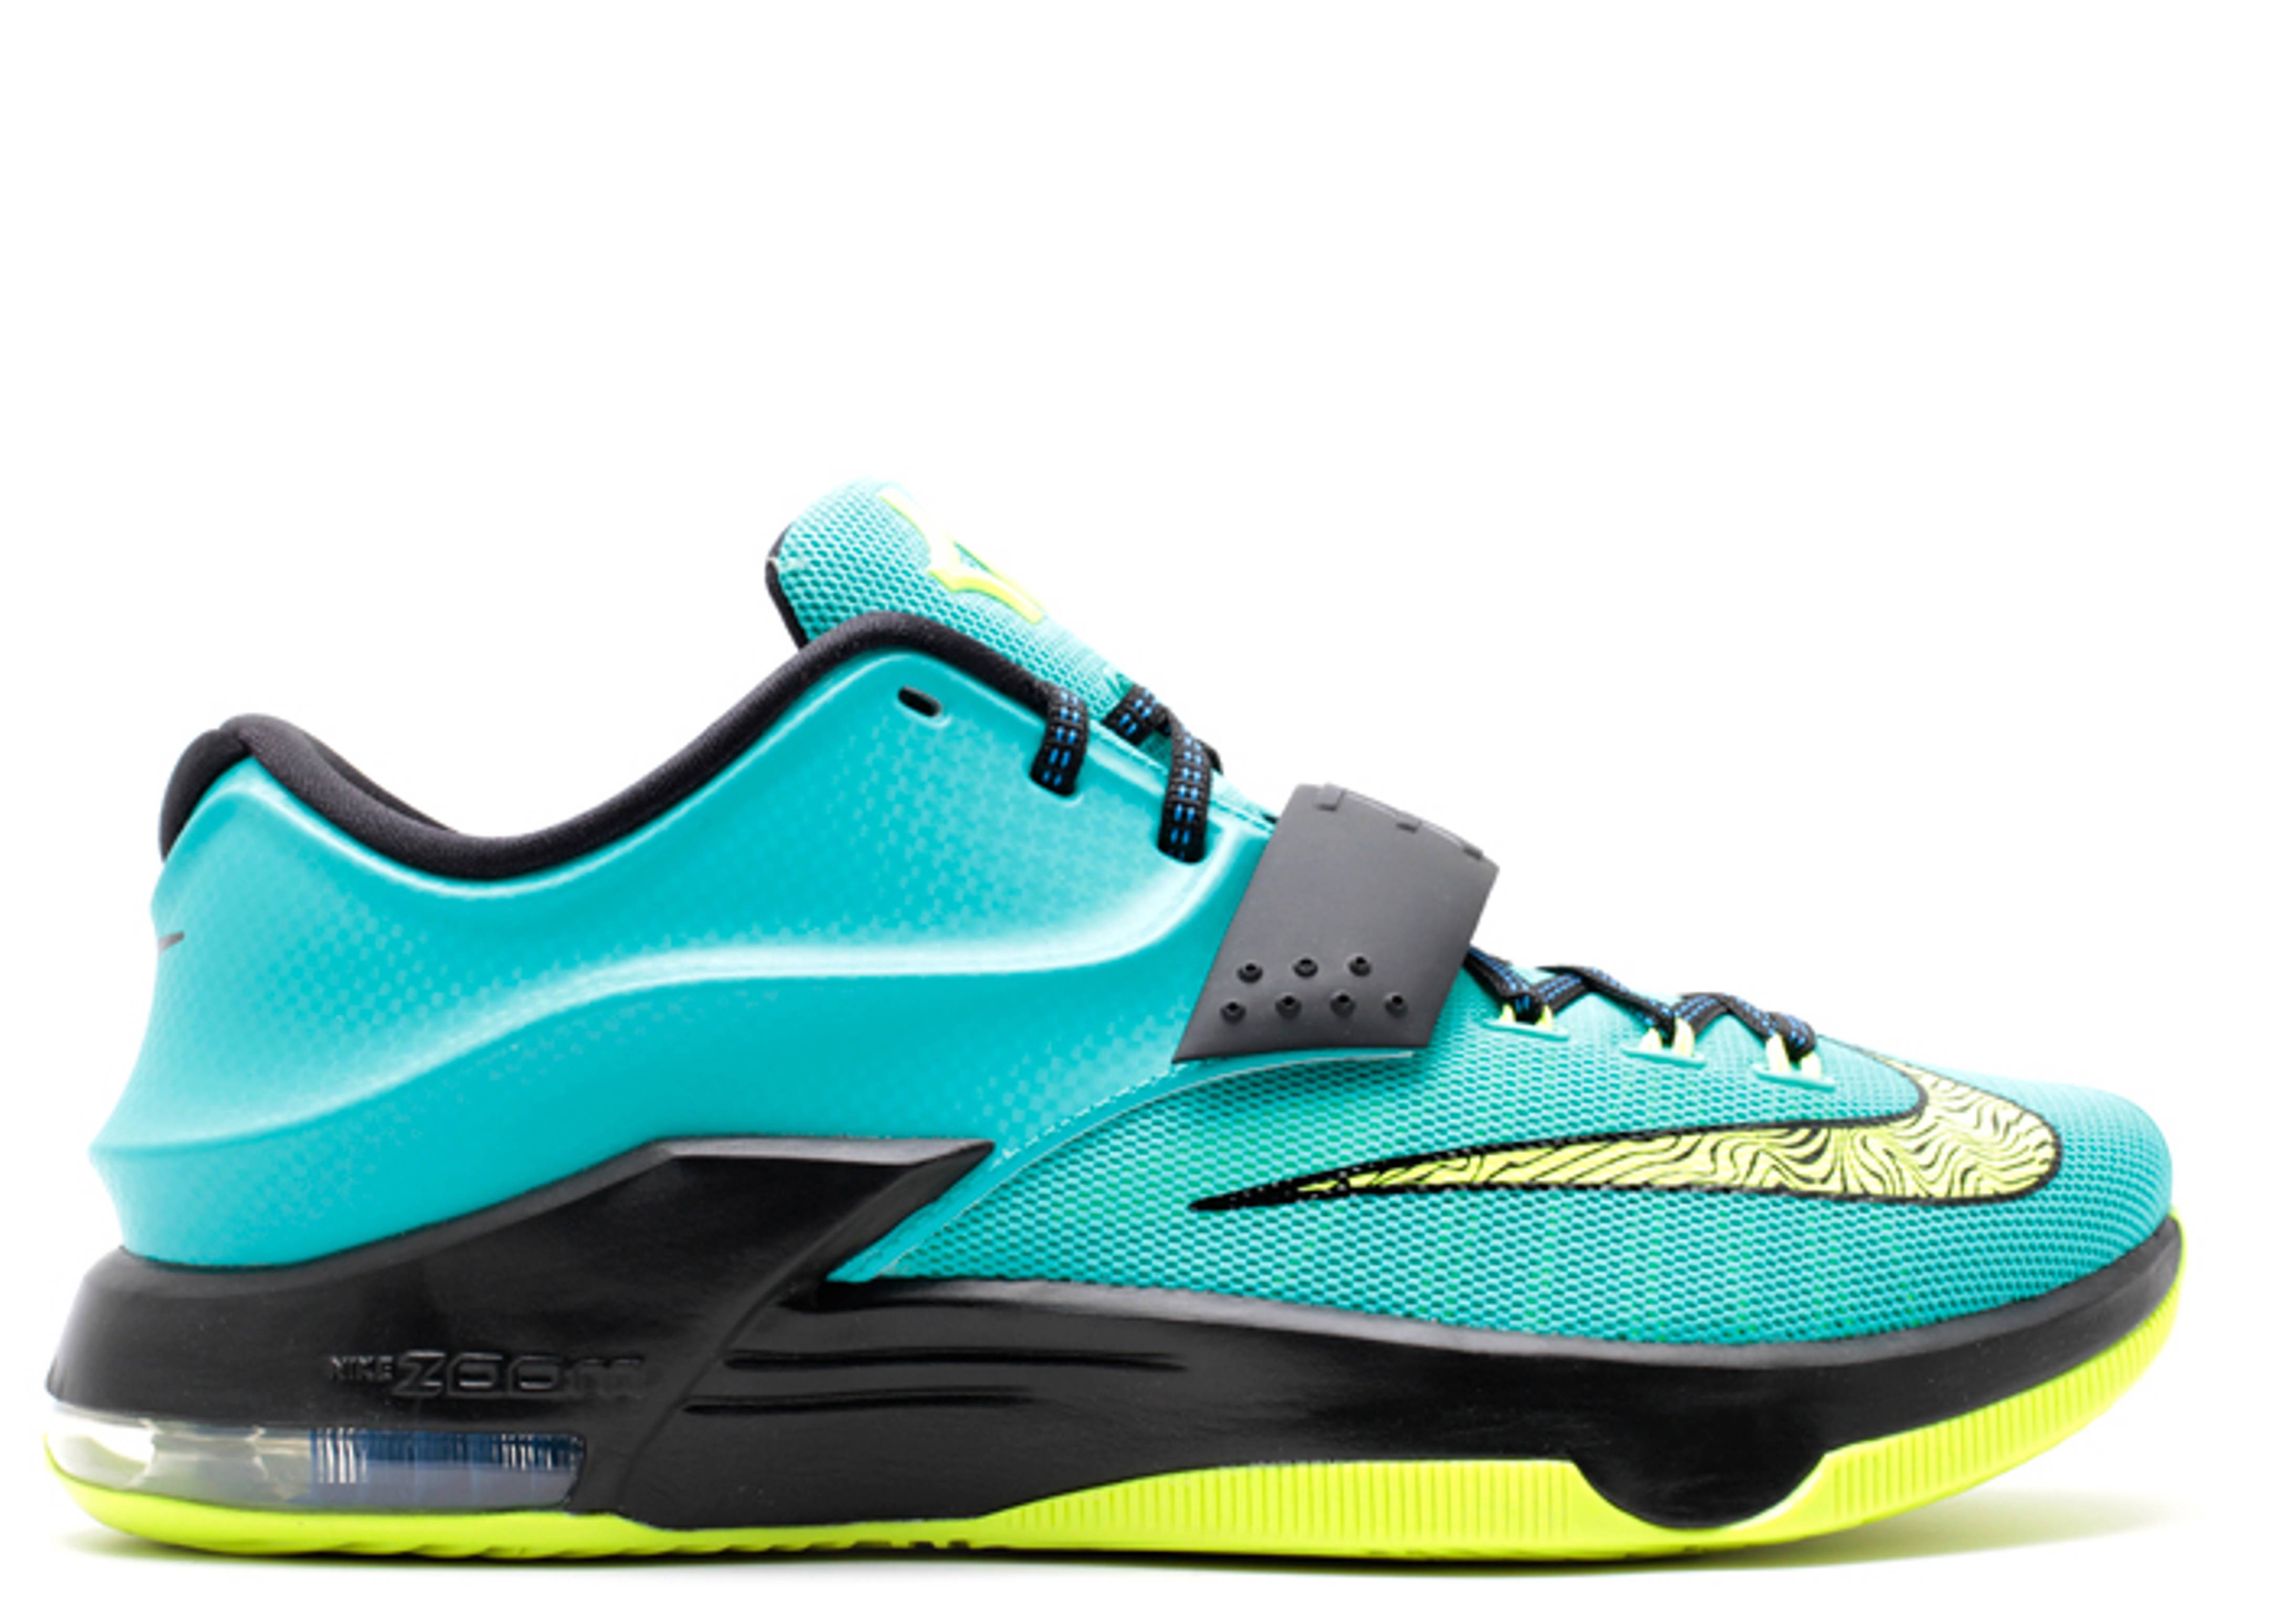 online store e854f 262aa ... top quality kd 7 uprising hyper jade volt black photo bab40 342bb